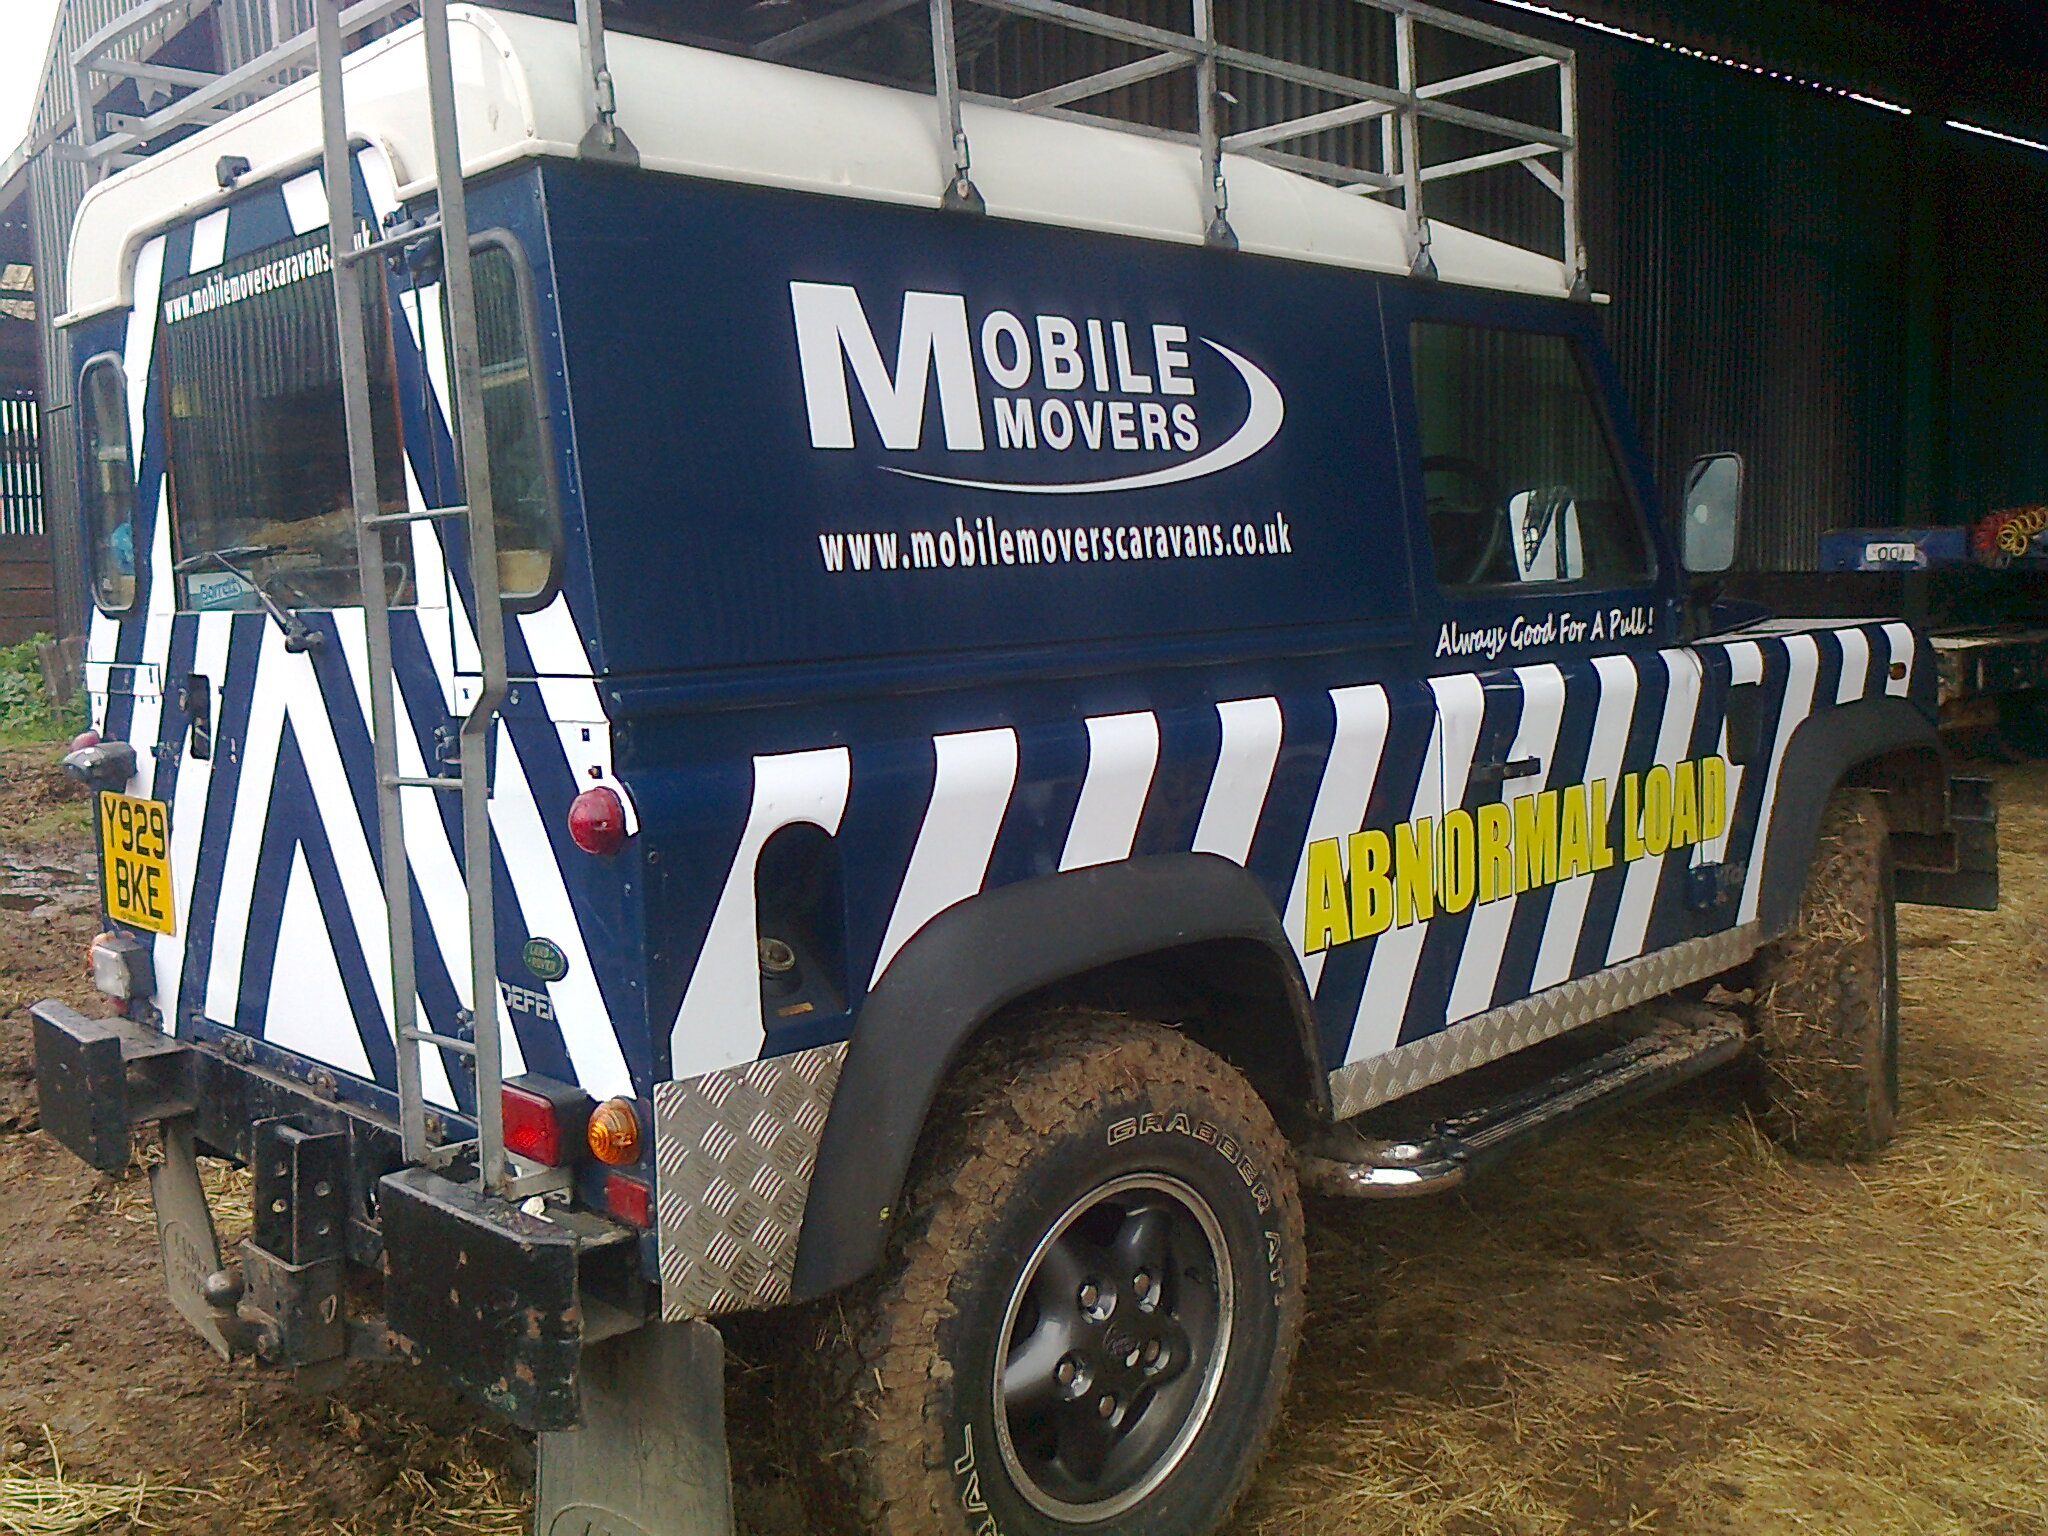 mobile movers landrover